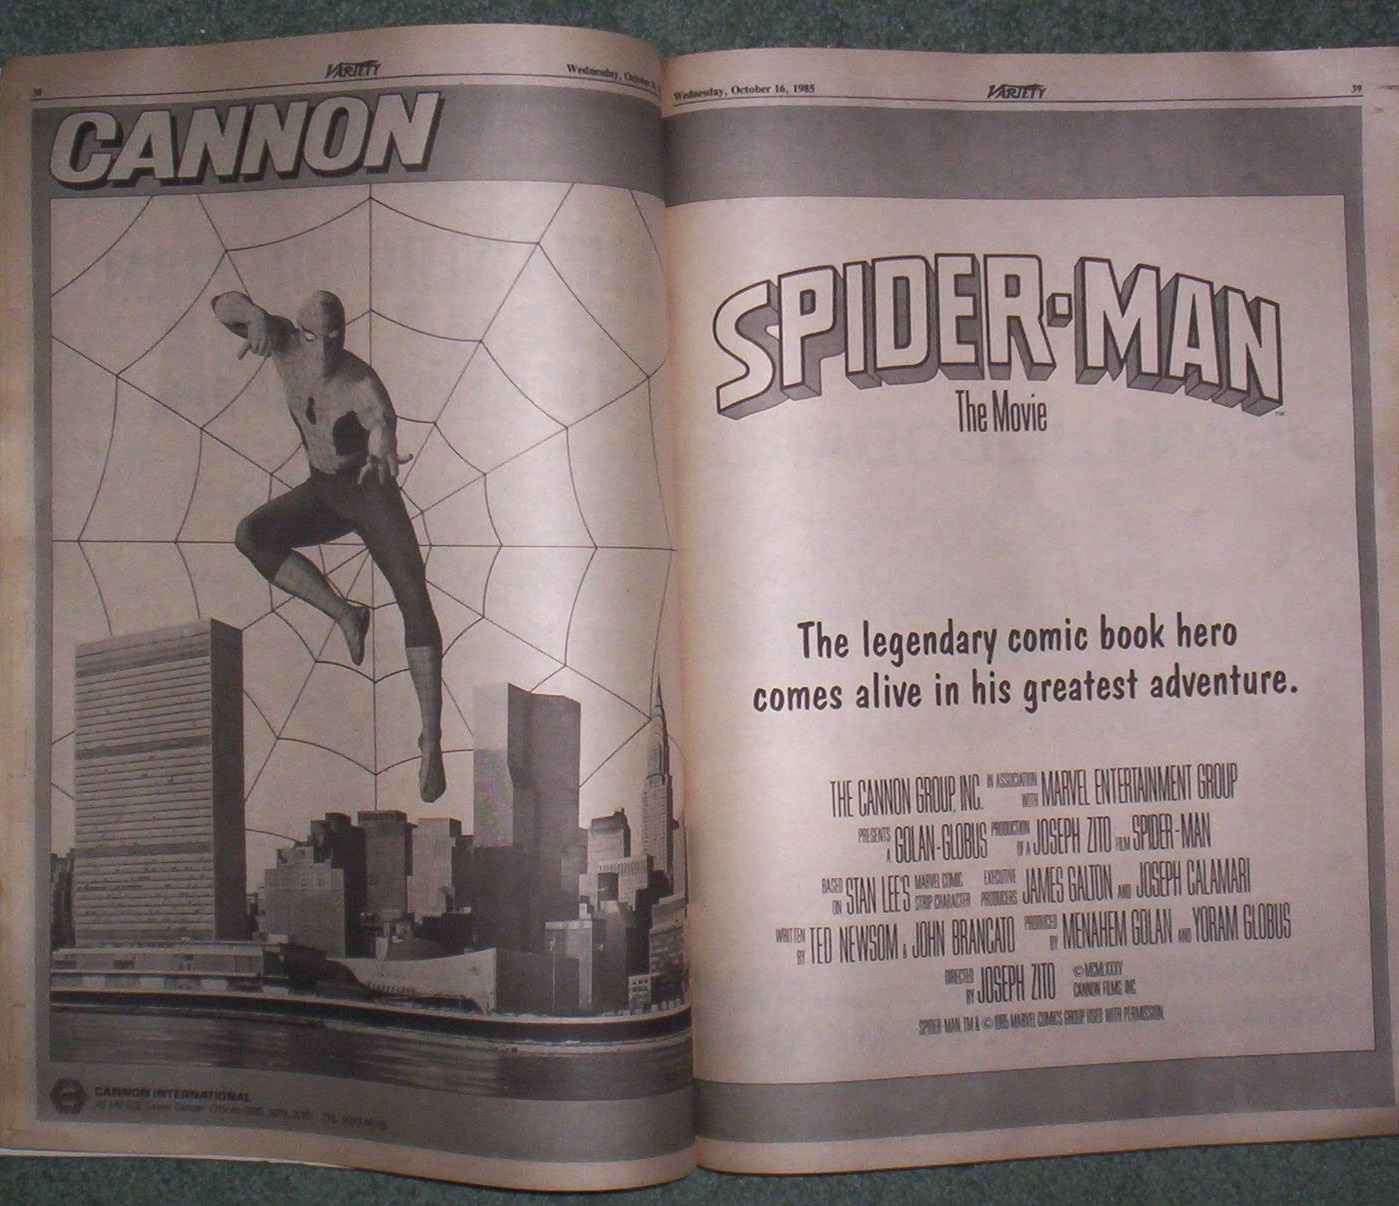 The Spider-Man movie that was never made, produced by Cannon Film